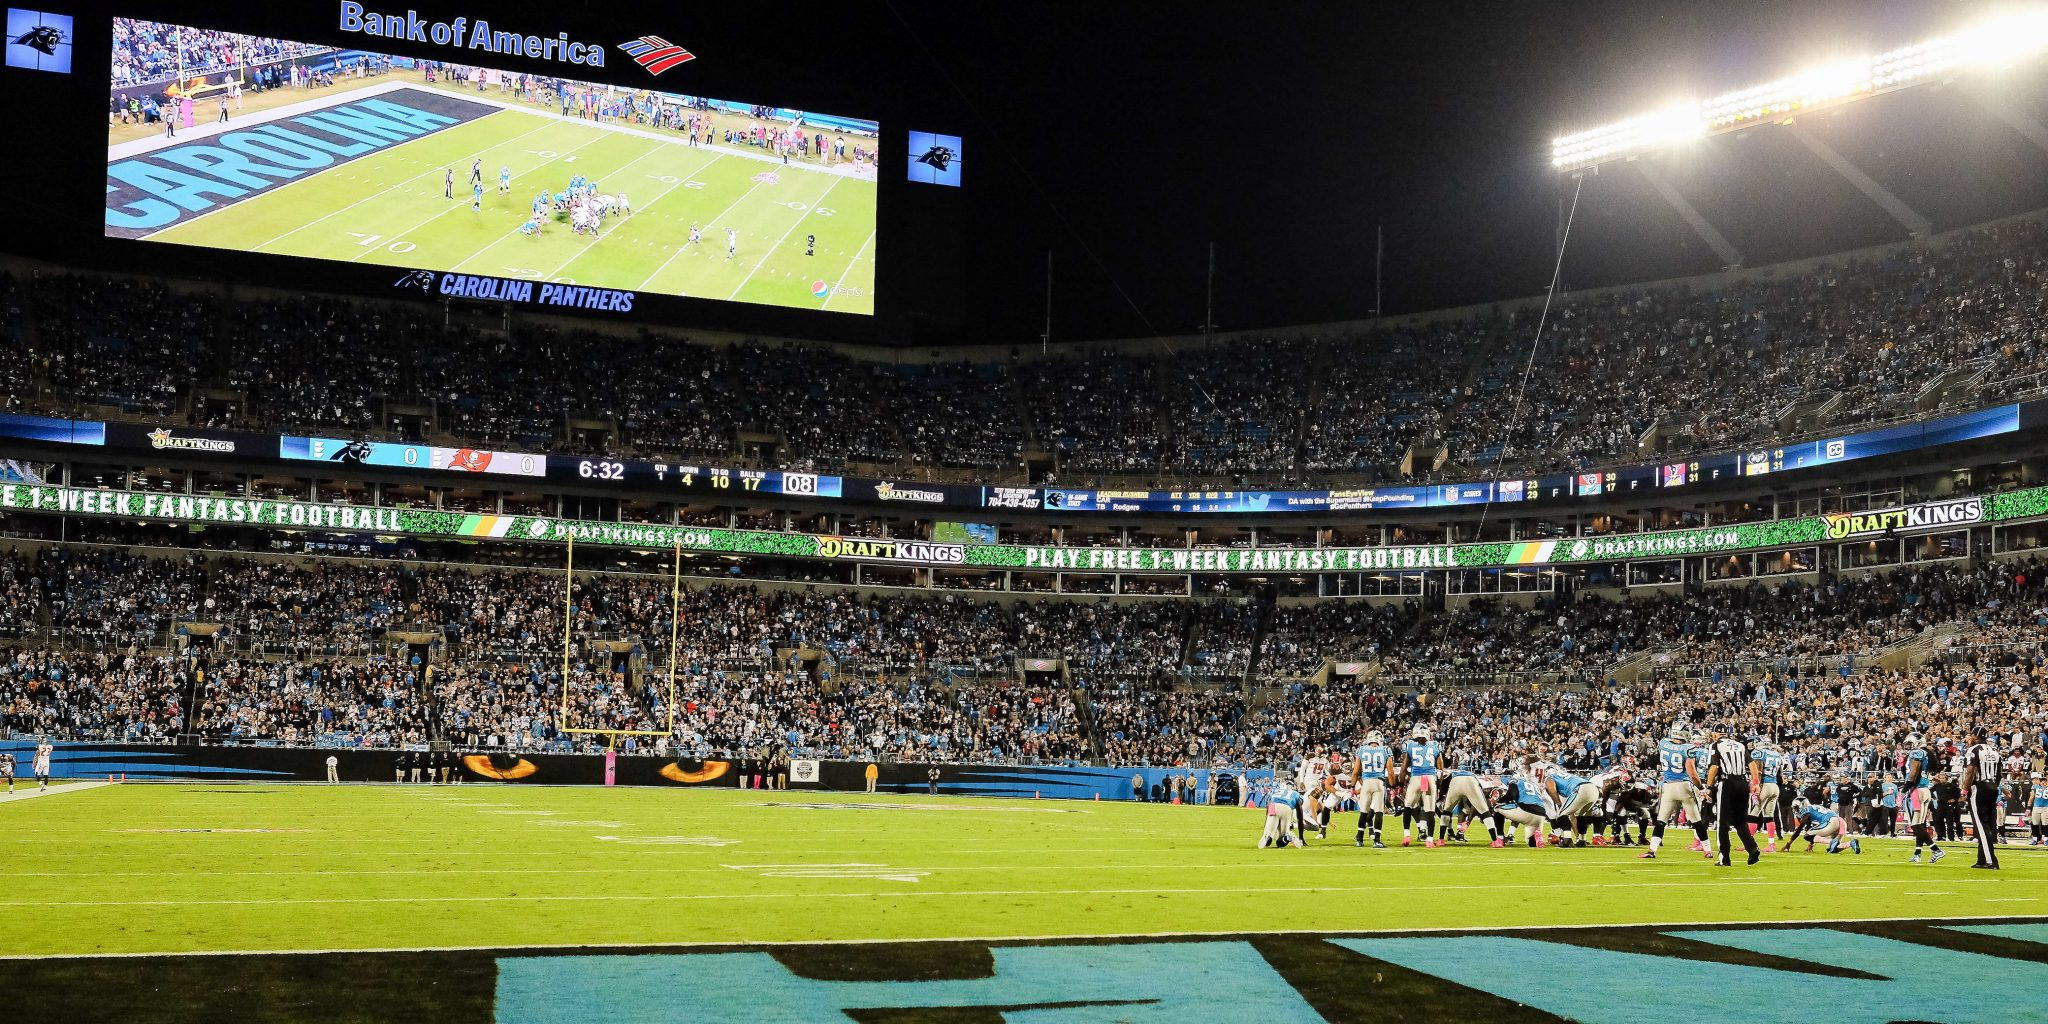 Carolina Panthers Plan Bunker Suites